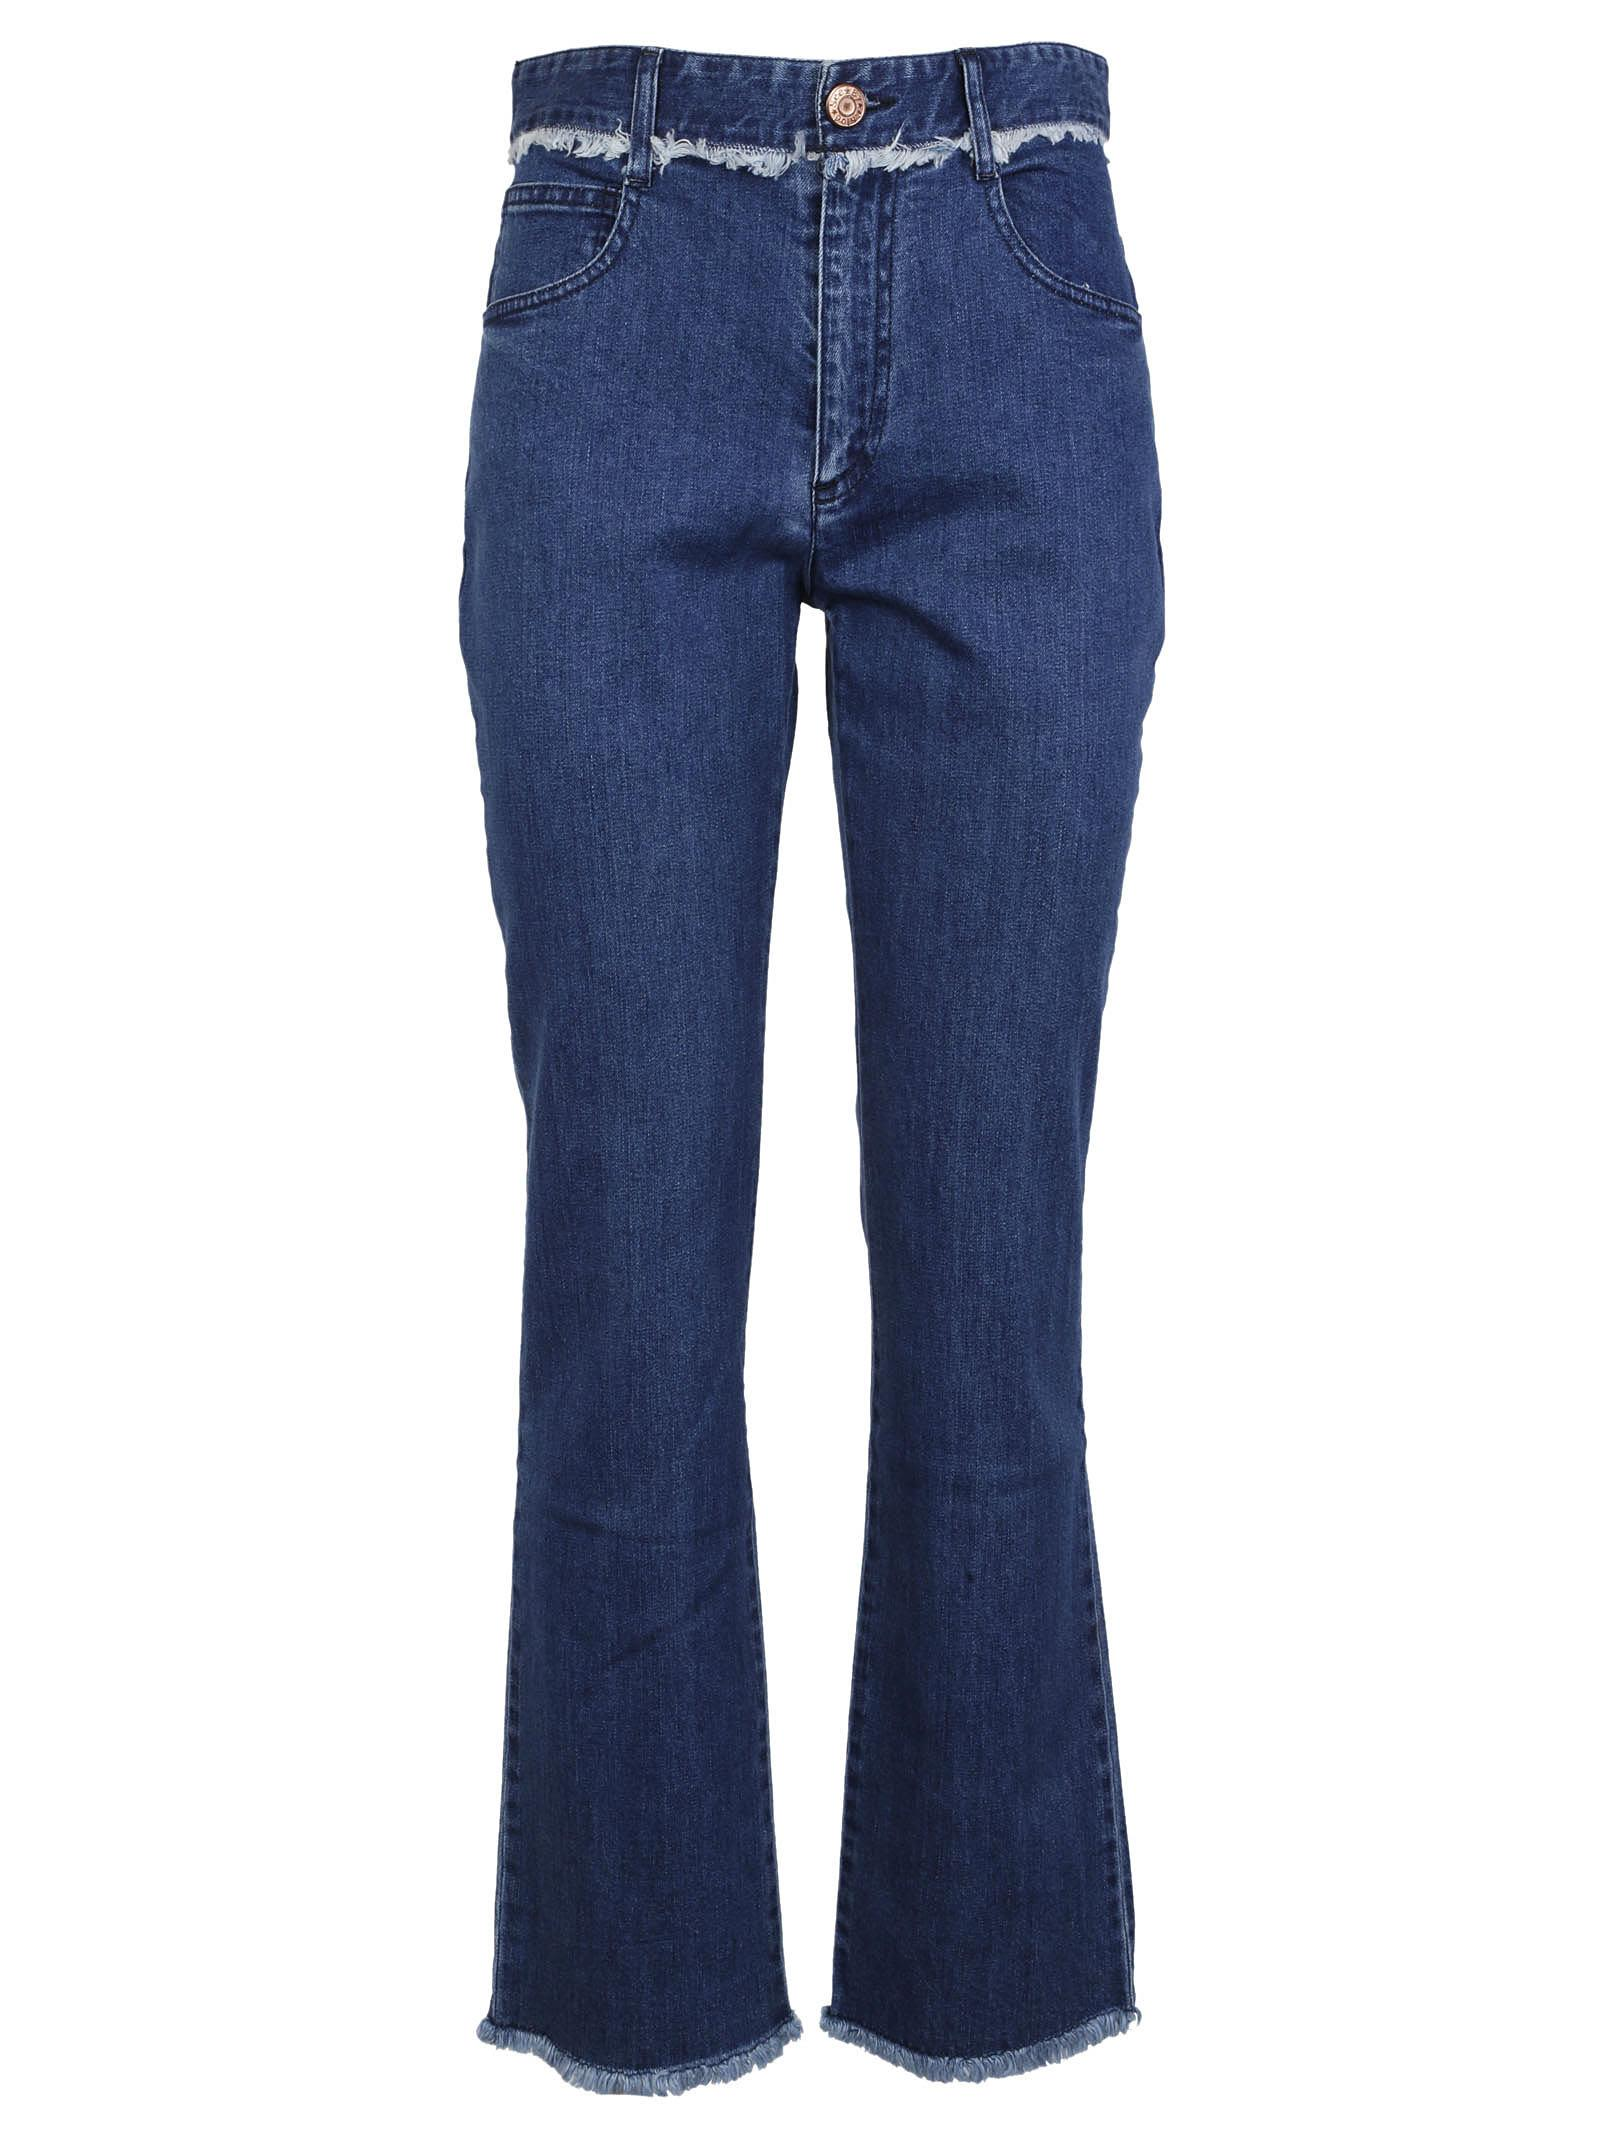 frayed trim jeans - Blue See By Chloé Free Shipping Low Shipping Cheap Amazon Free Shipping Pre Order Clearance 100% Authentic K1rVa5s